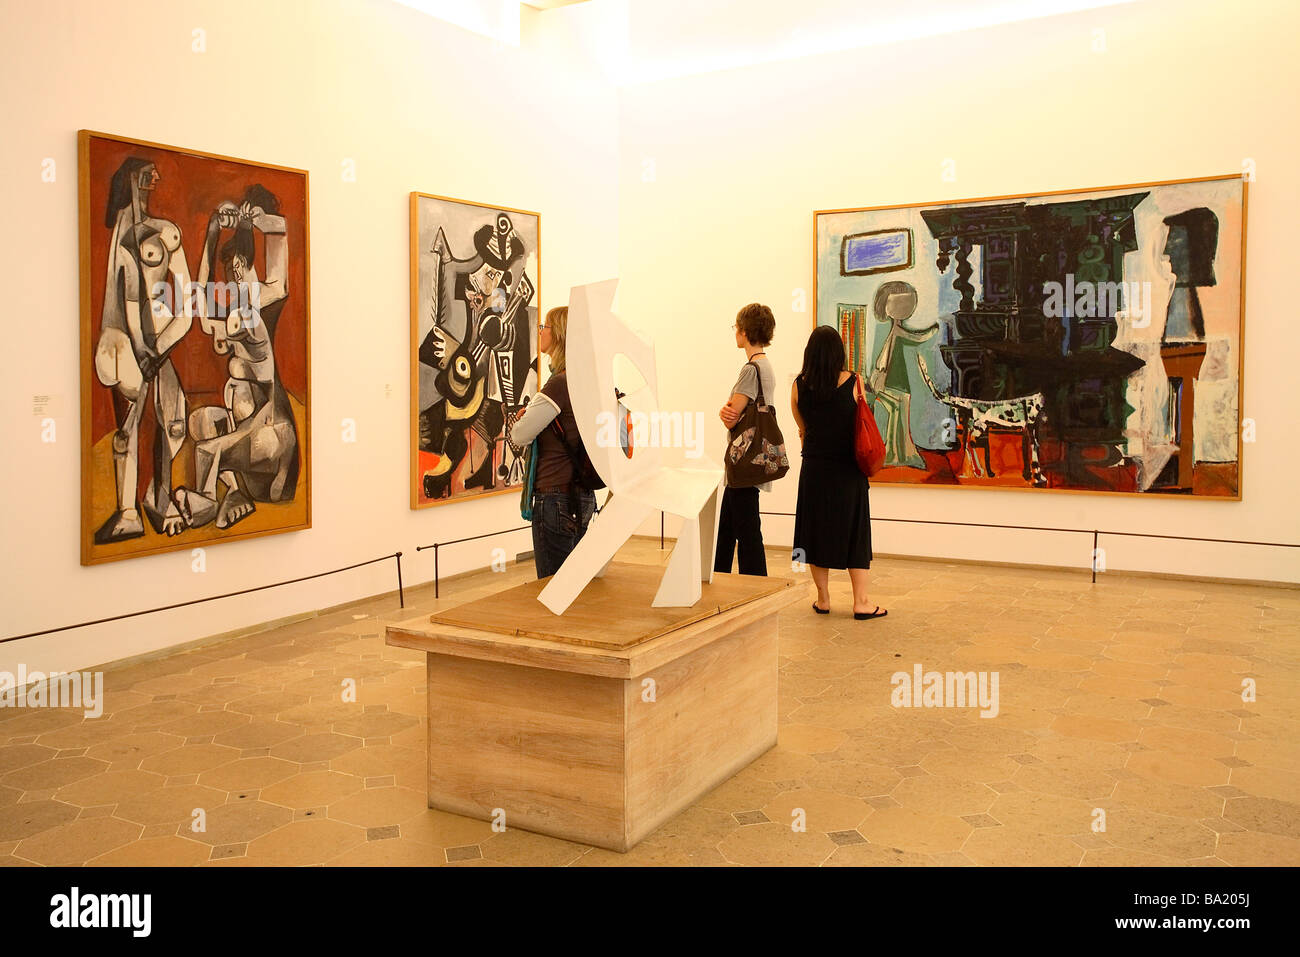 picasso museum paris painting exhibition stock photo royalty free image 23400990 alamy. Black Bedroom Furniture Sets. Home Design Ideas